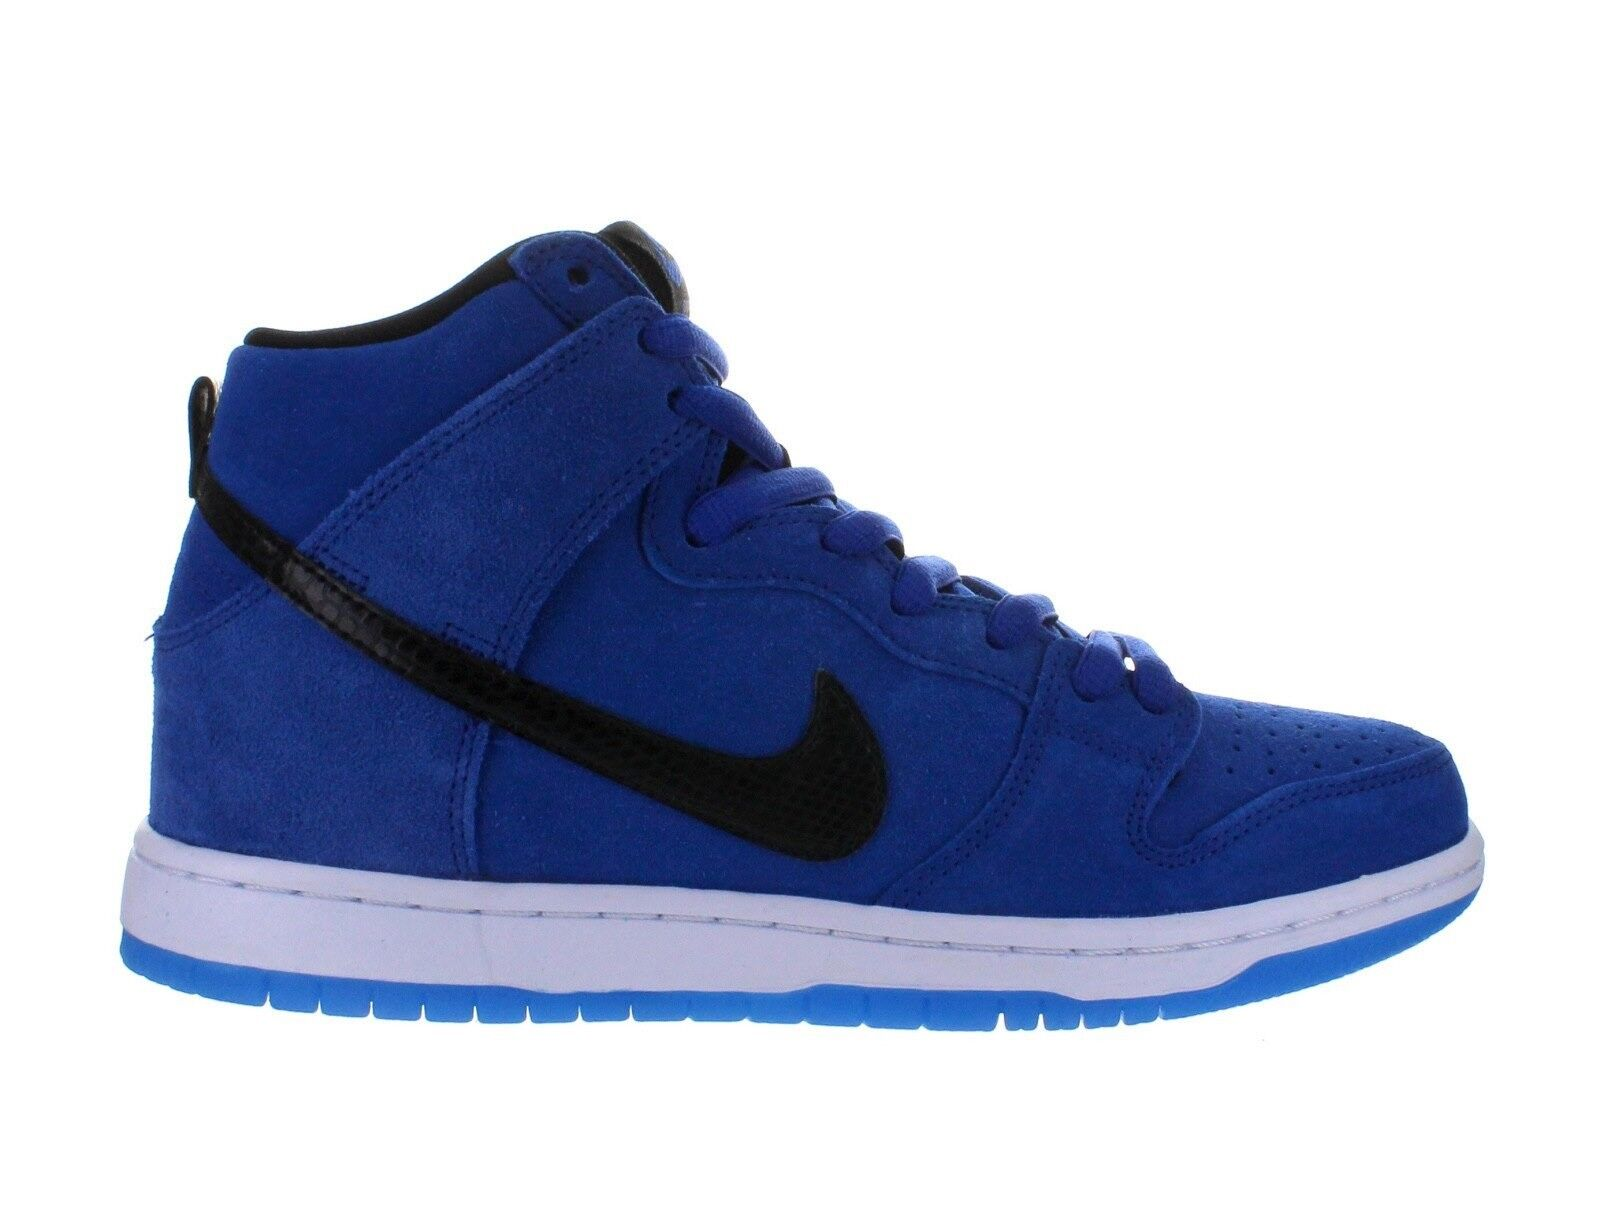 sneakers for cheap 854ac b2119 Nike DUNK HIGH PRO SB Game Royal Black White Discounted (440) Men's Shoes